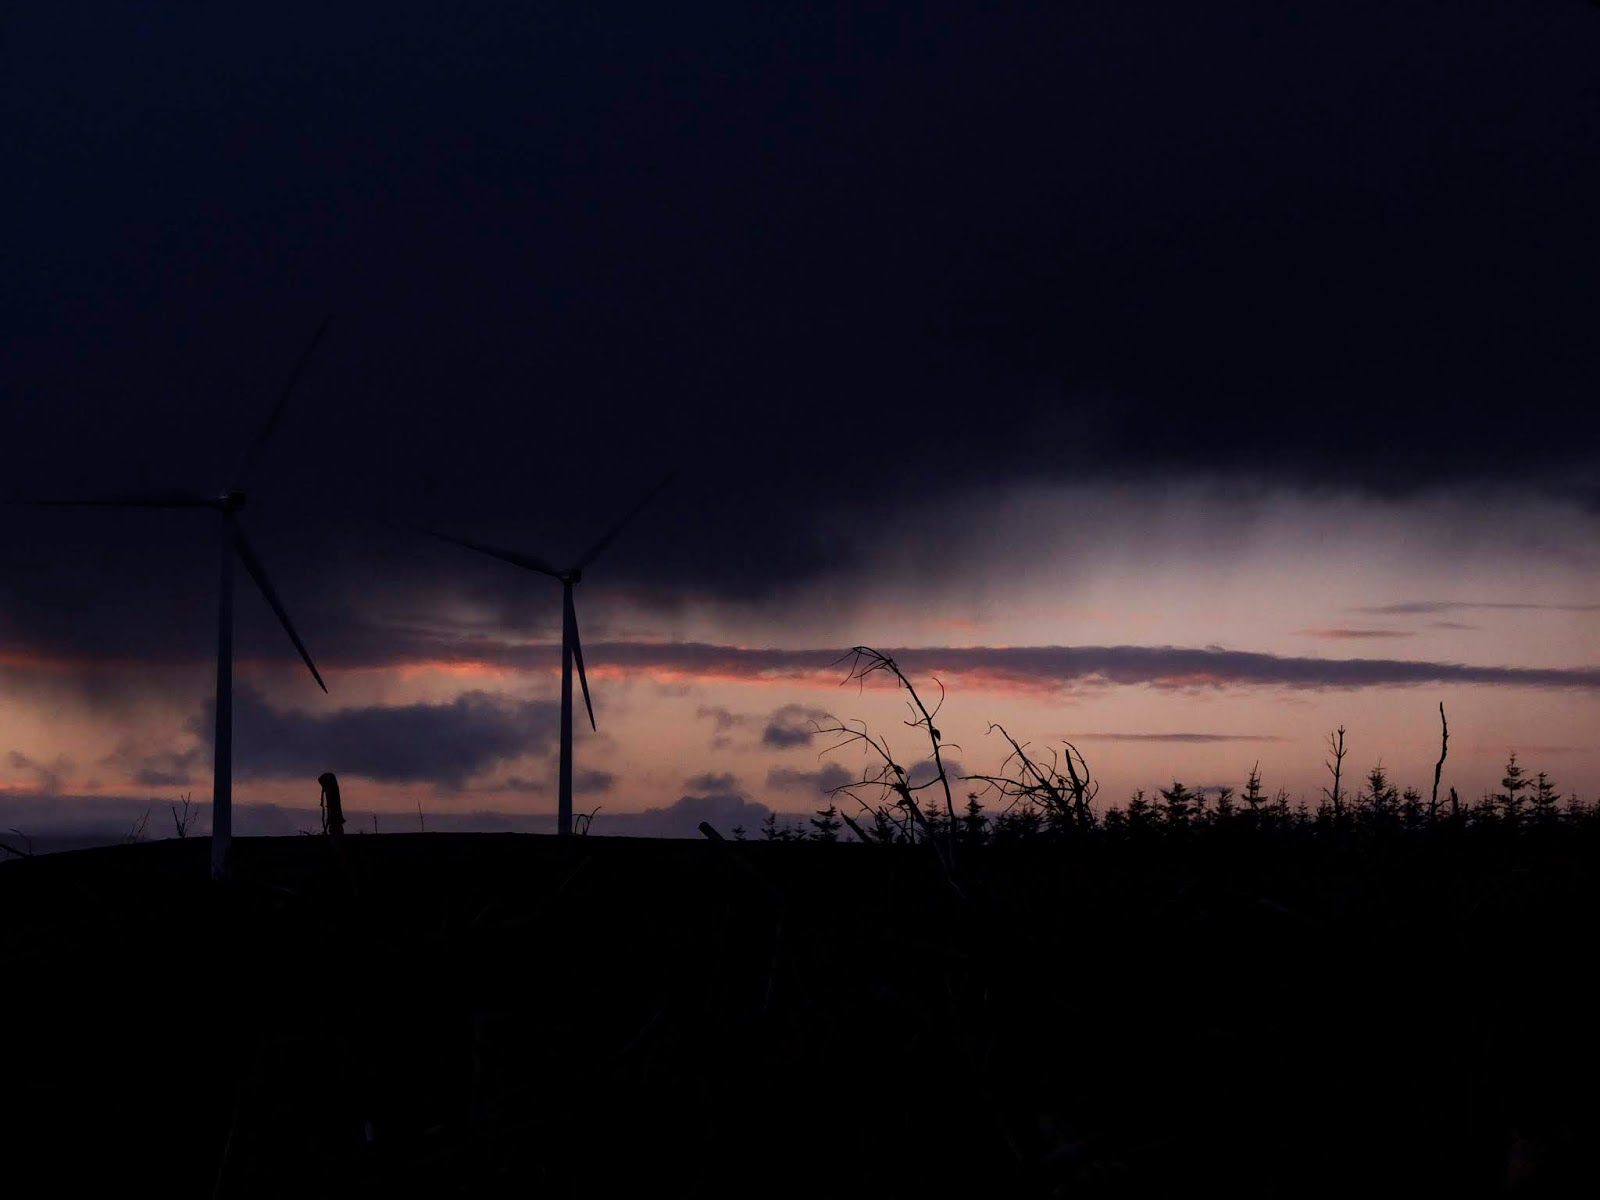 Very dark, navy rain clouds and two windmills to the left of the photograph.